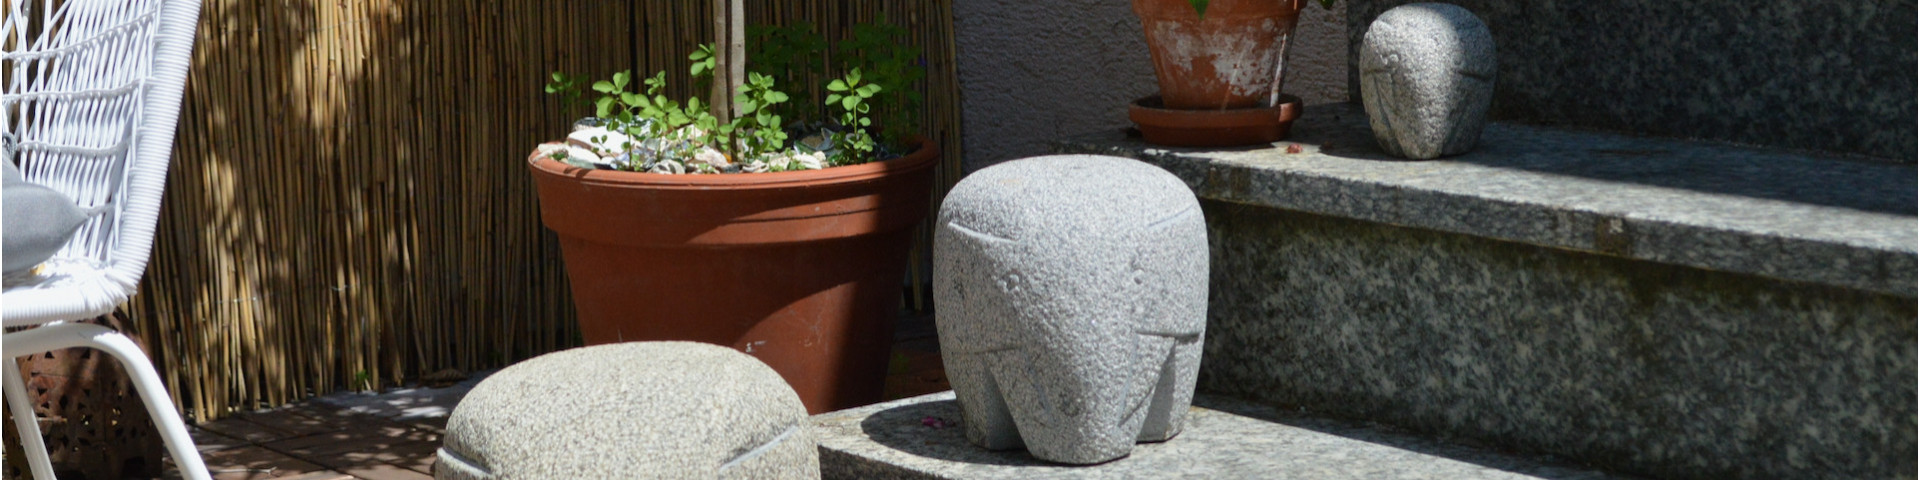 shop natural stone elephant figures for your garden,terrace or balcony